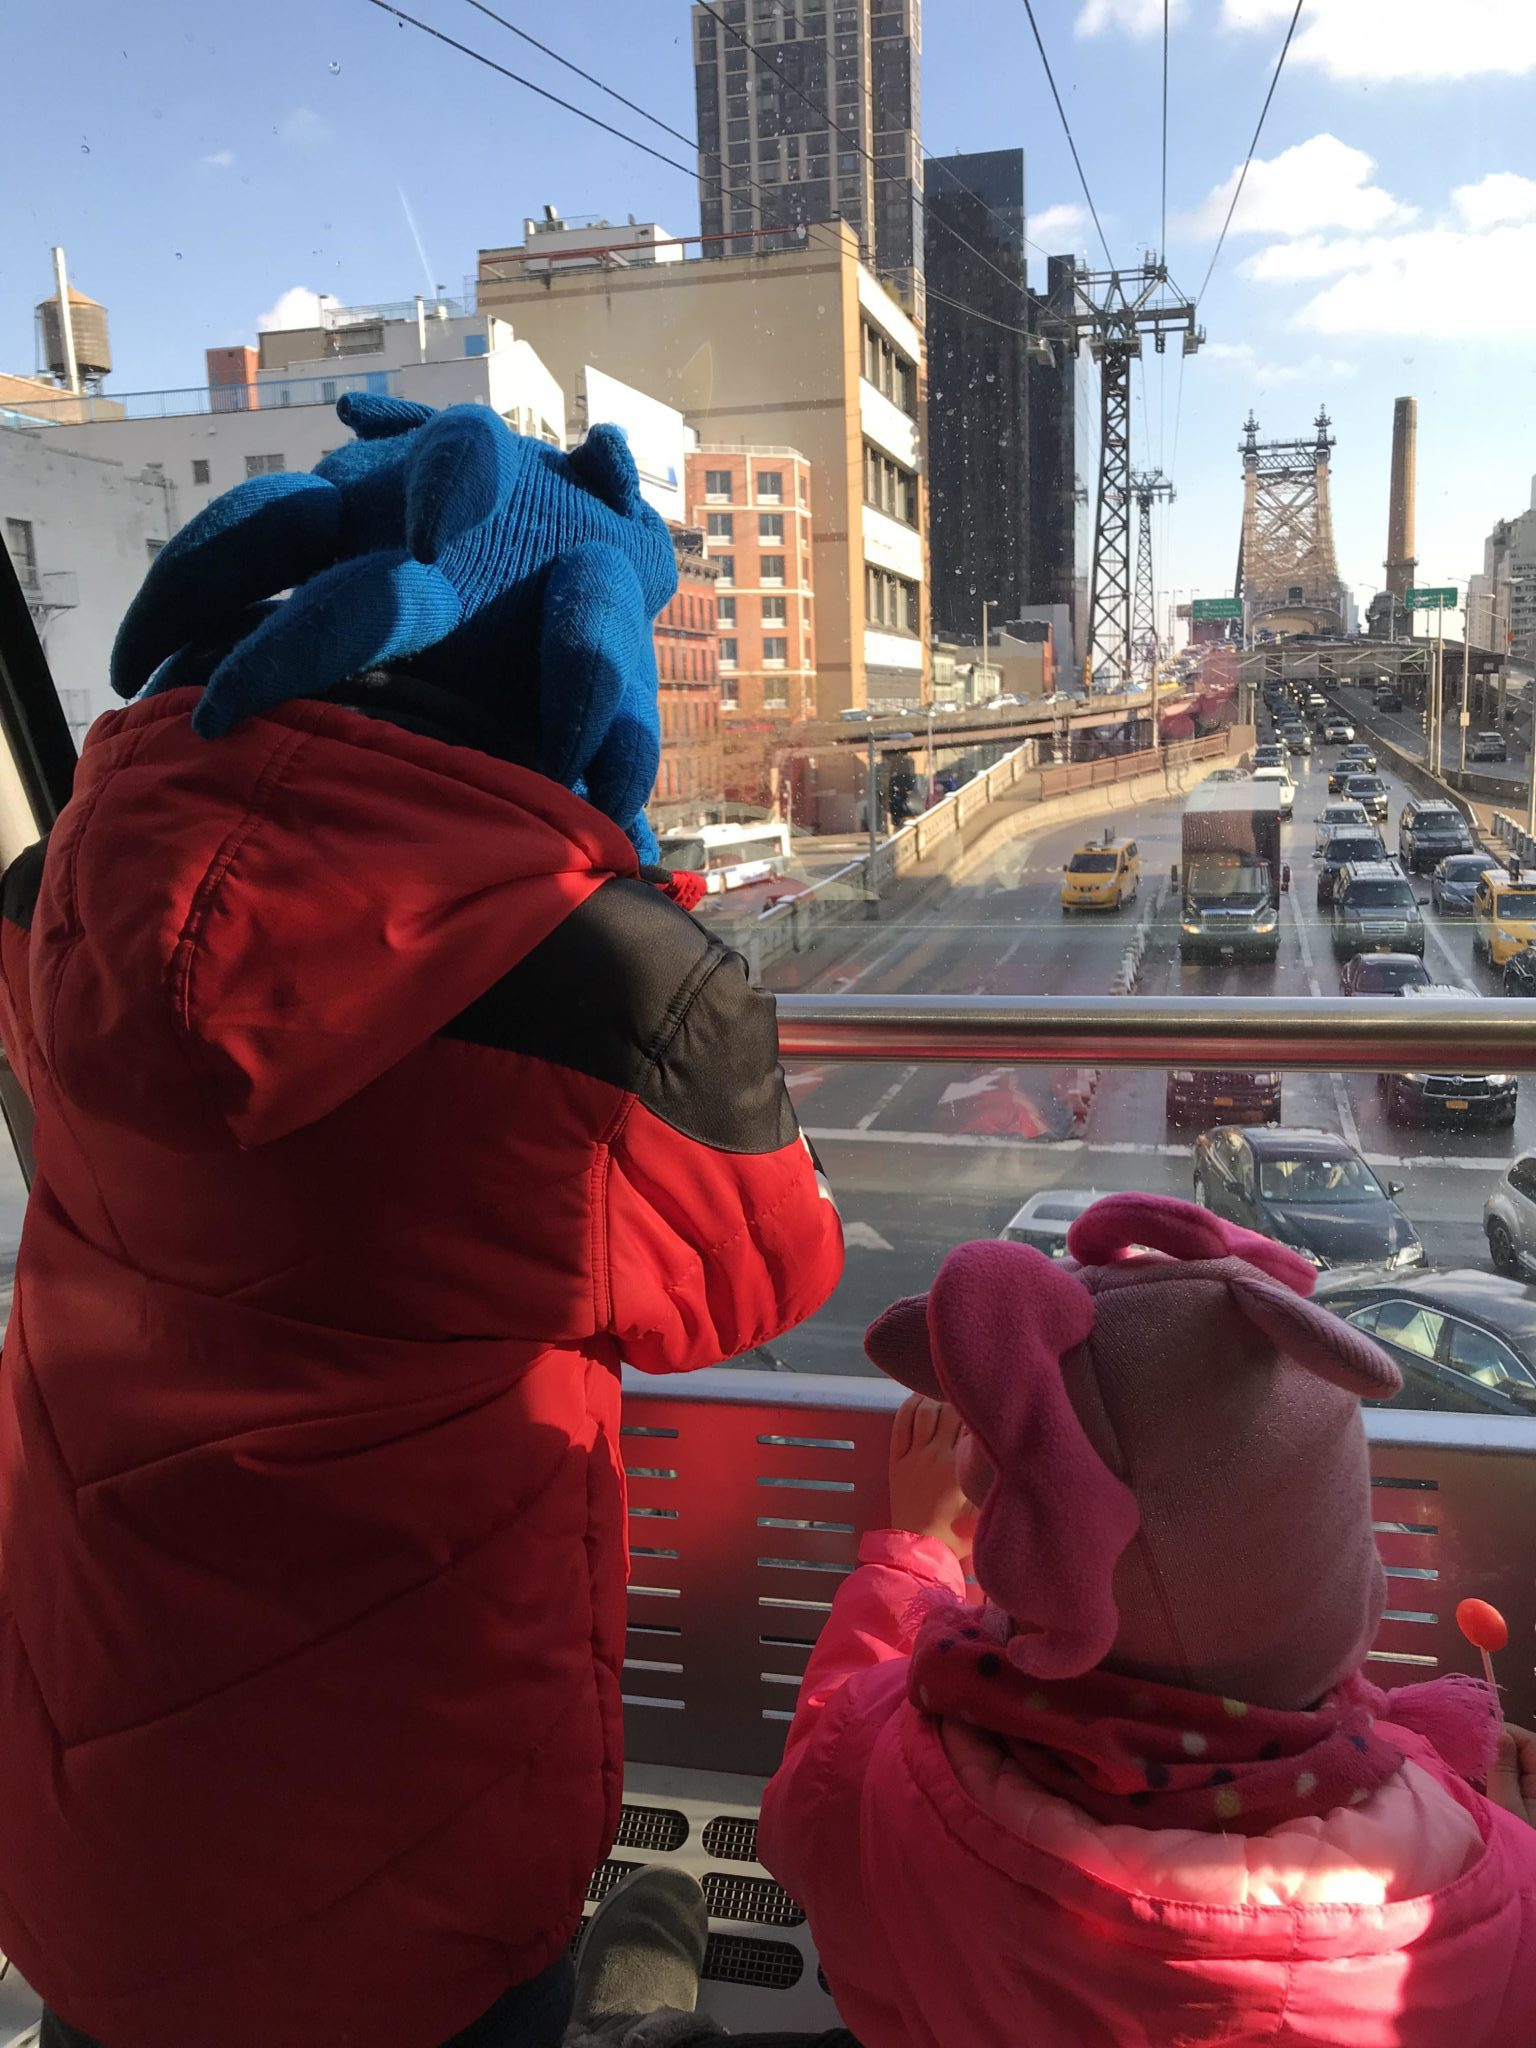 Going for a ride on the Roosevelt Island Tram